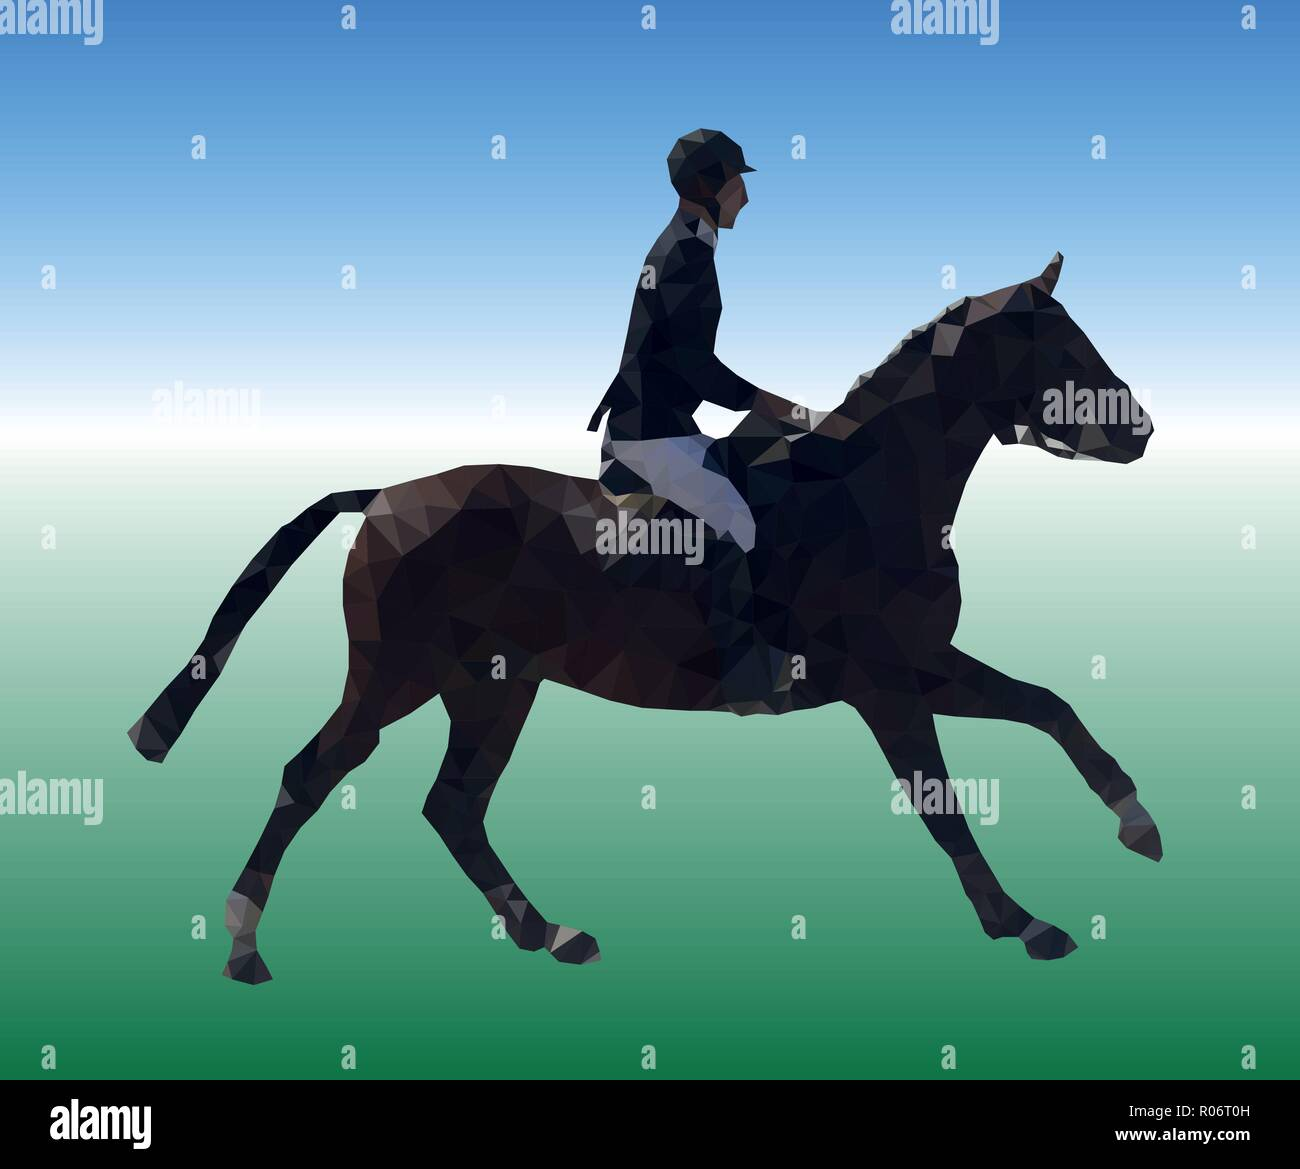 The rider is galloping on a dark bay horse. Low poly vector illustration. Equestrian theme. Image consisting of triangles of different sizes. - Stock Vector